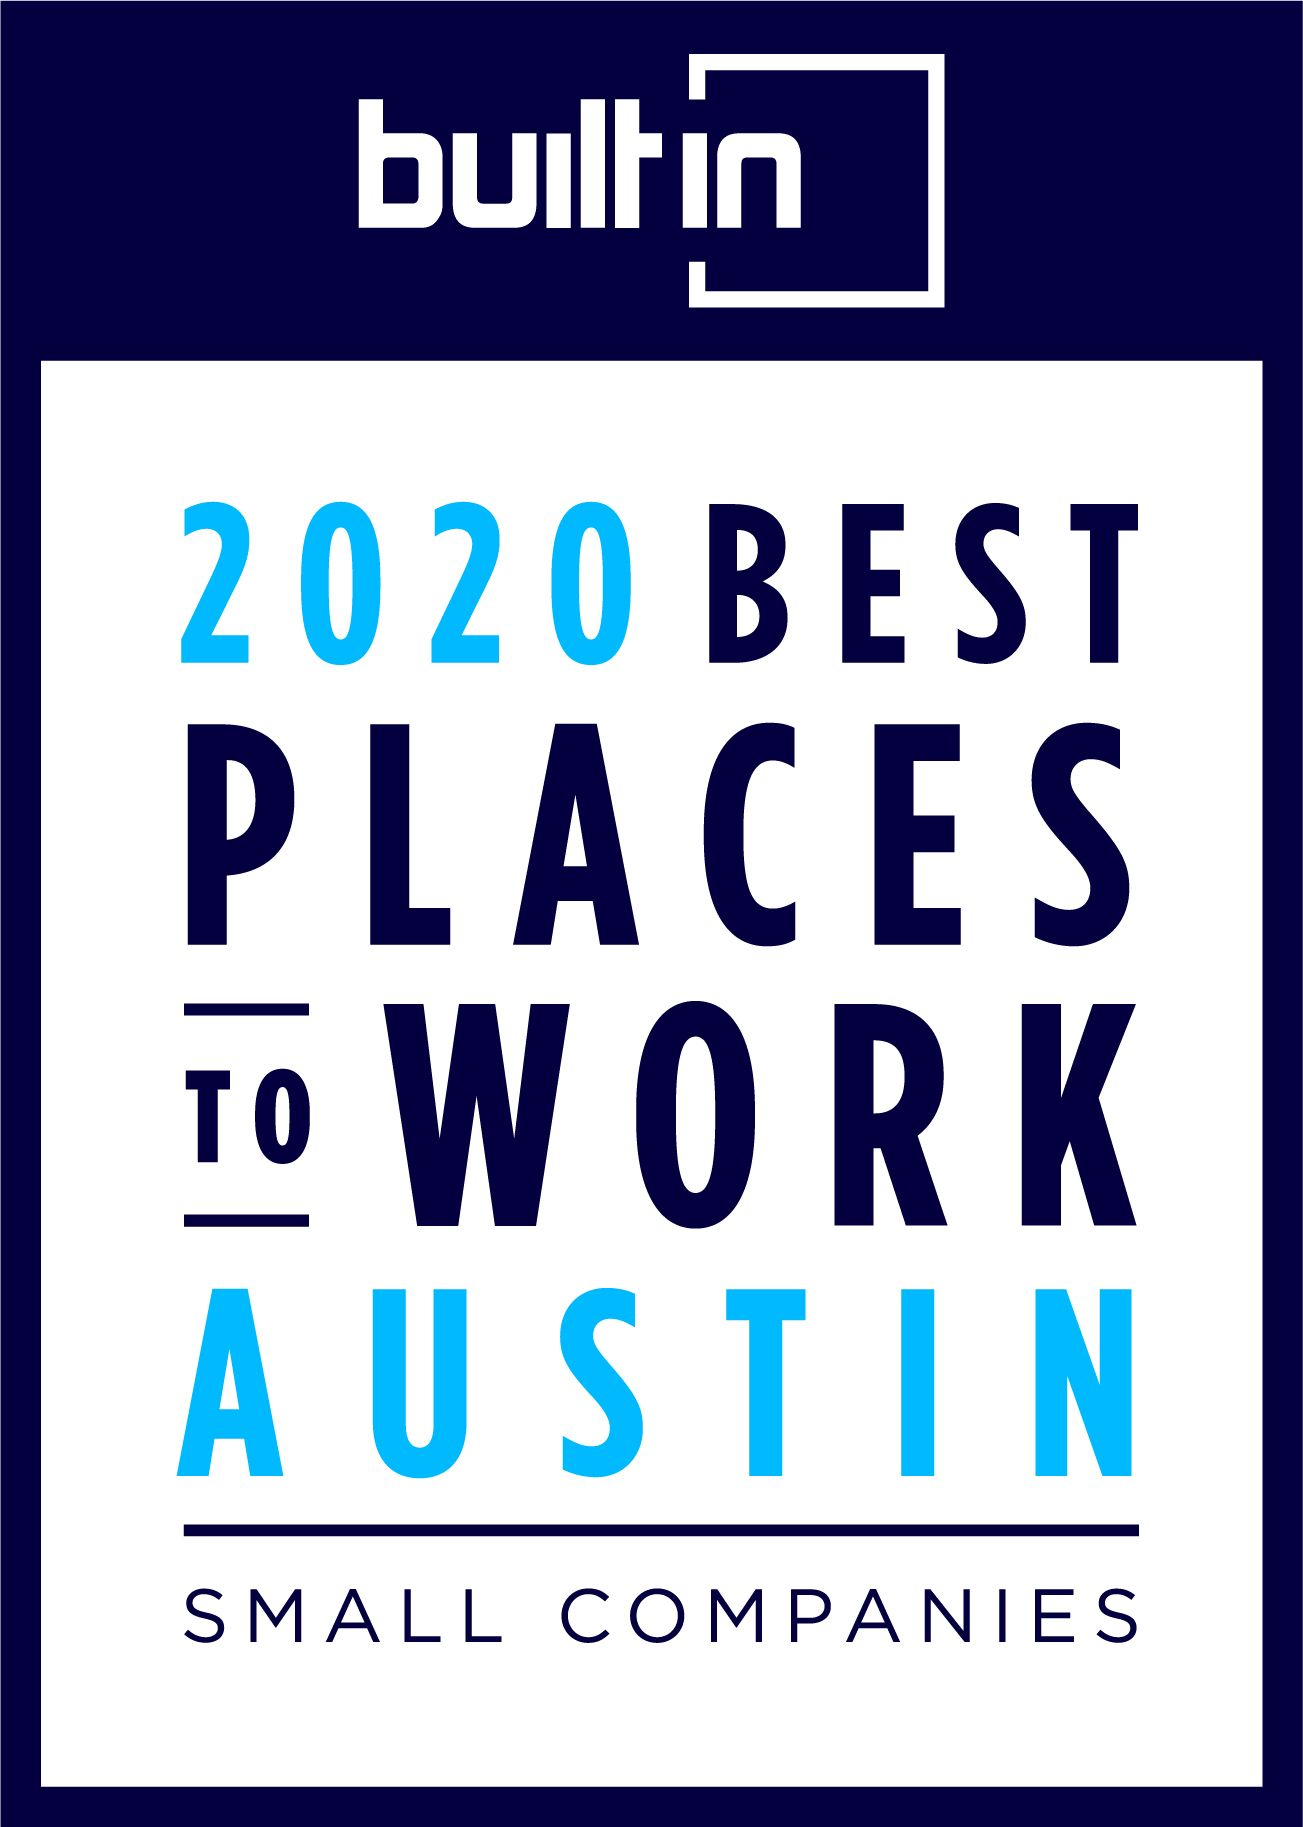 2020 Best Places to Work Austin Badge